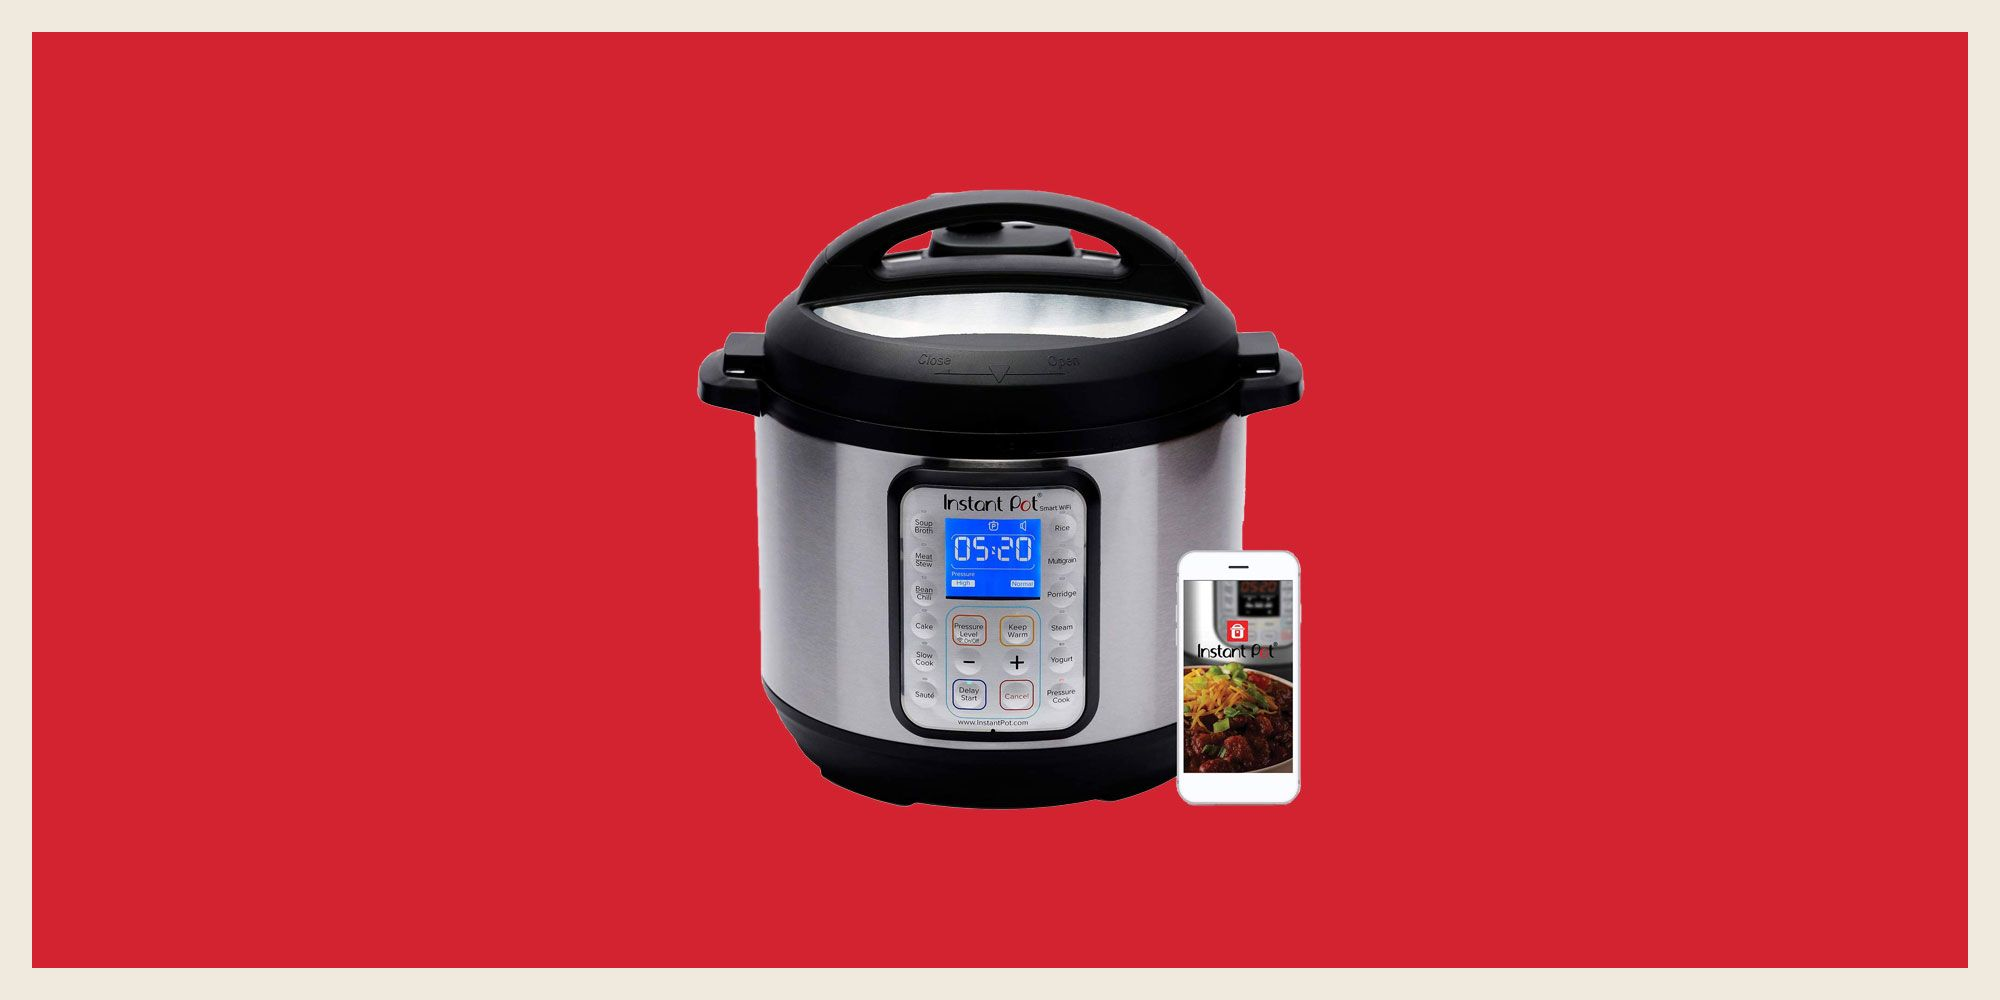 Amazon's Having a Great Sale on Instant Pot's Ridiculously Smart Pressure Cooker